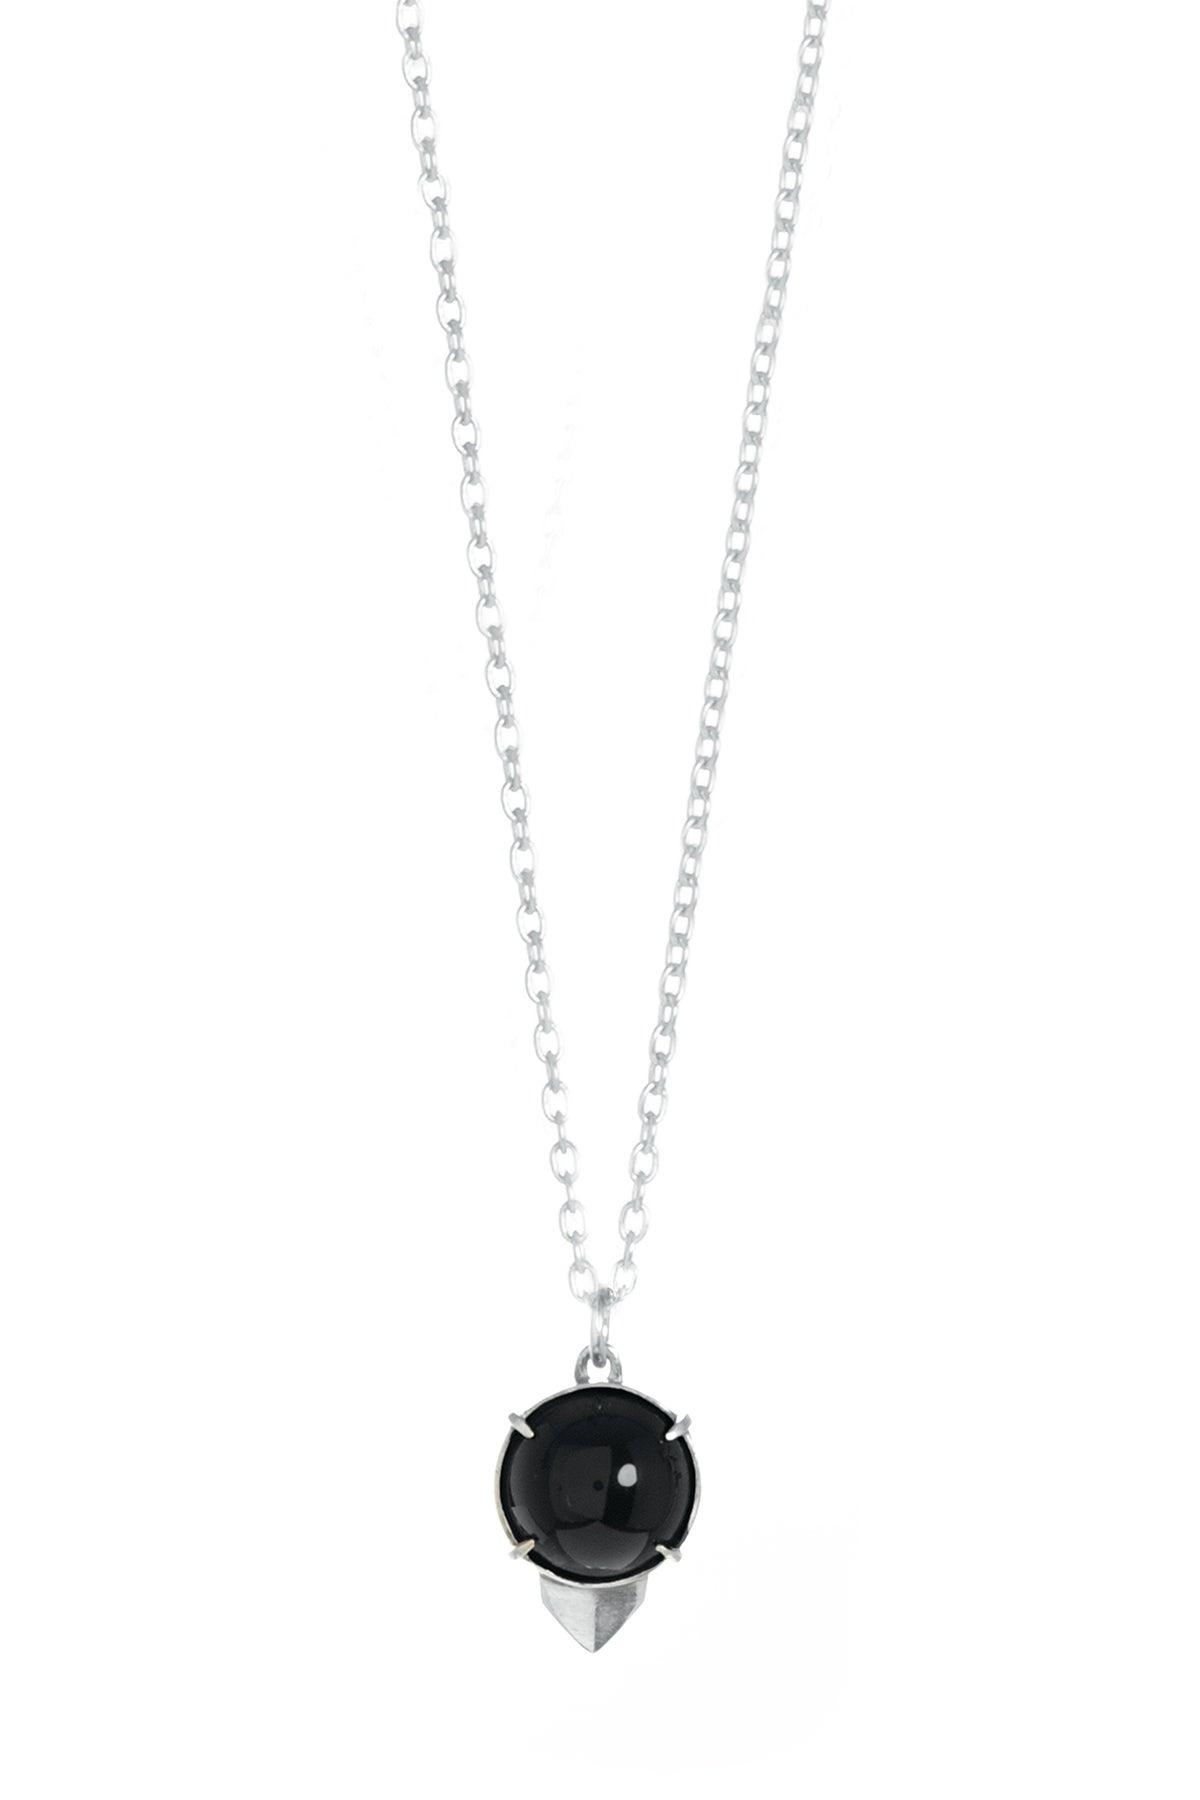 Image of ONYX OWL NECKLACE - SILVER